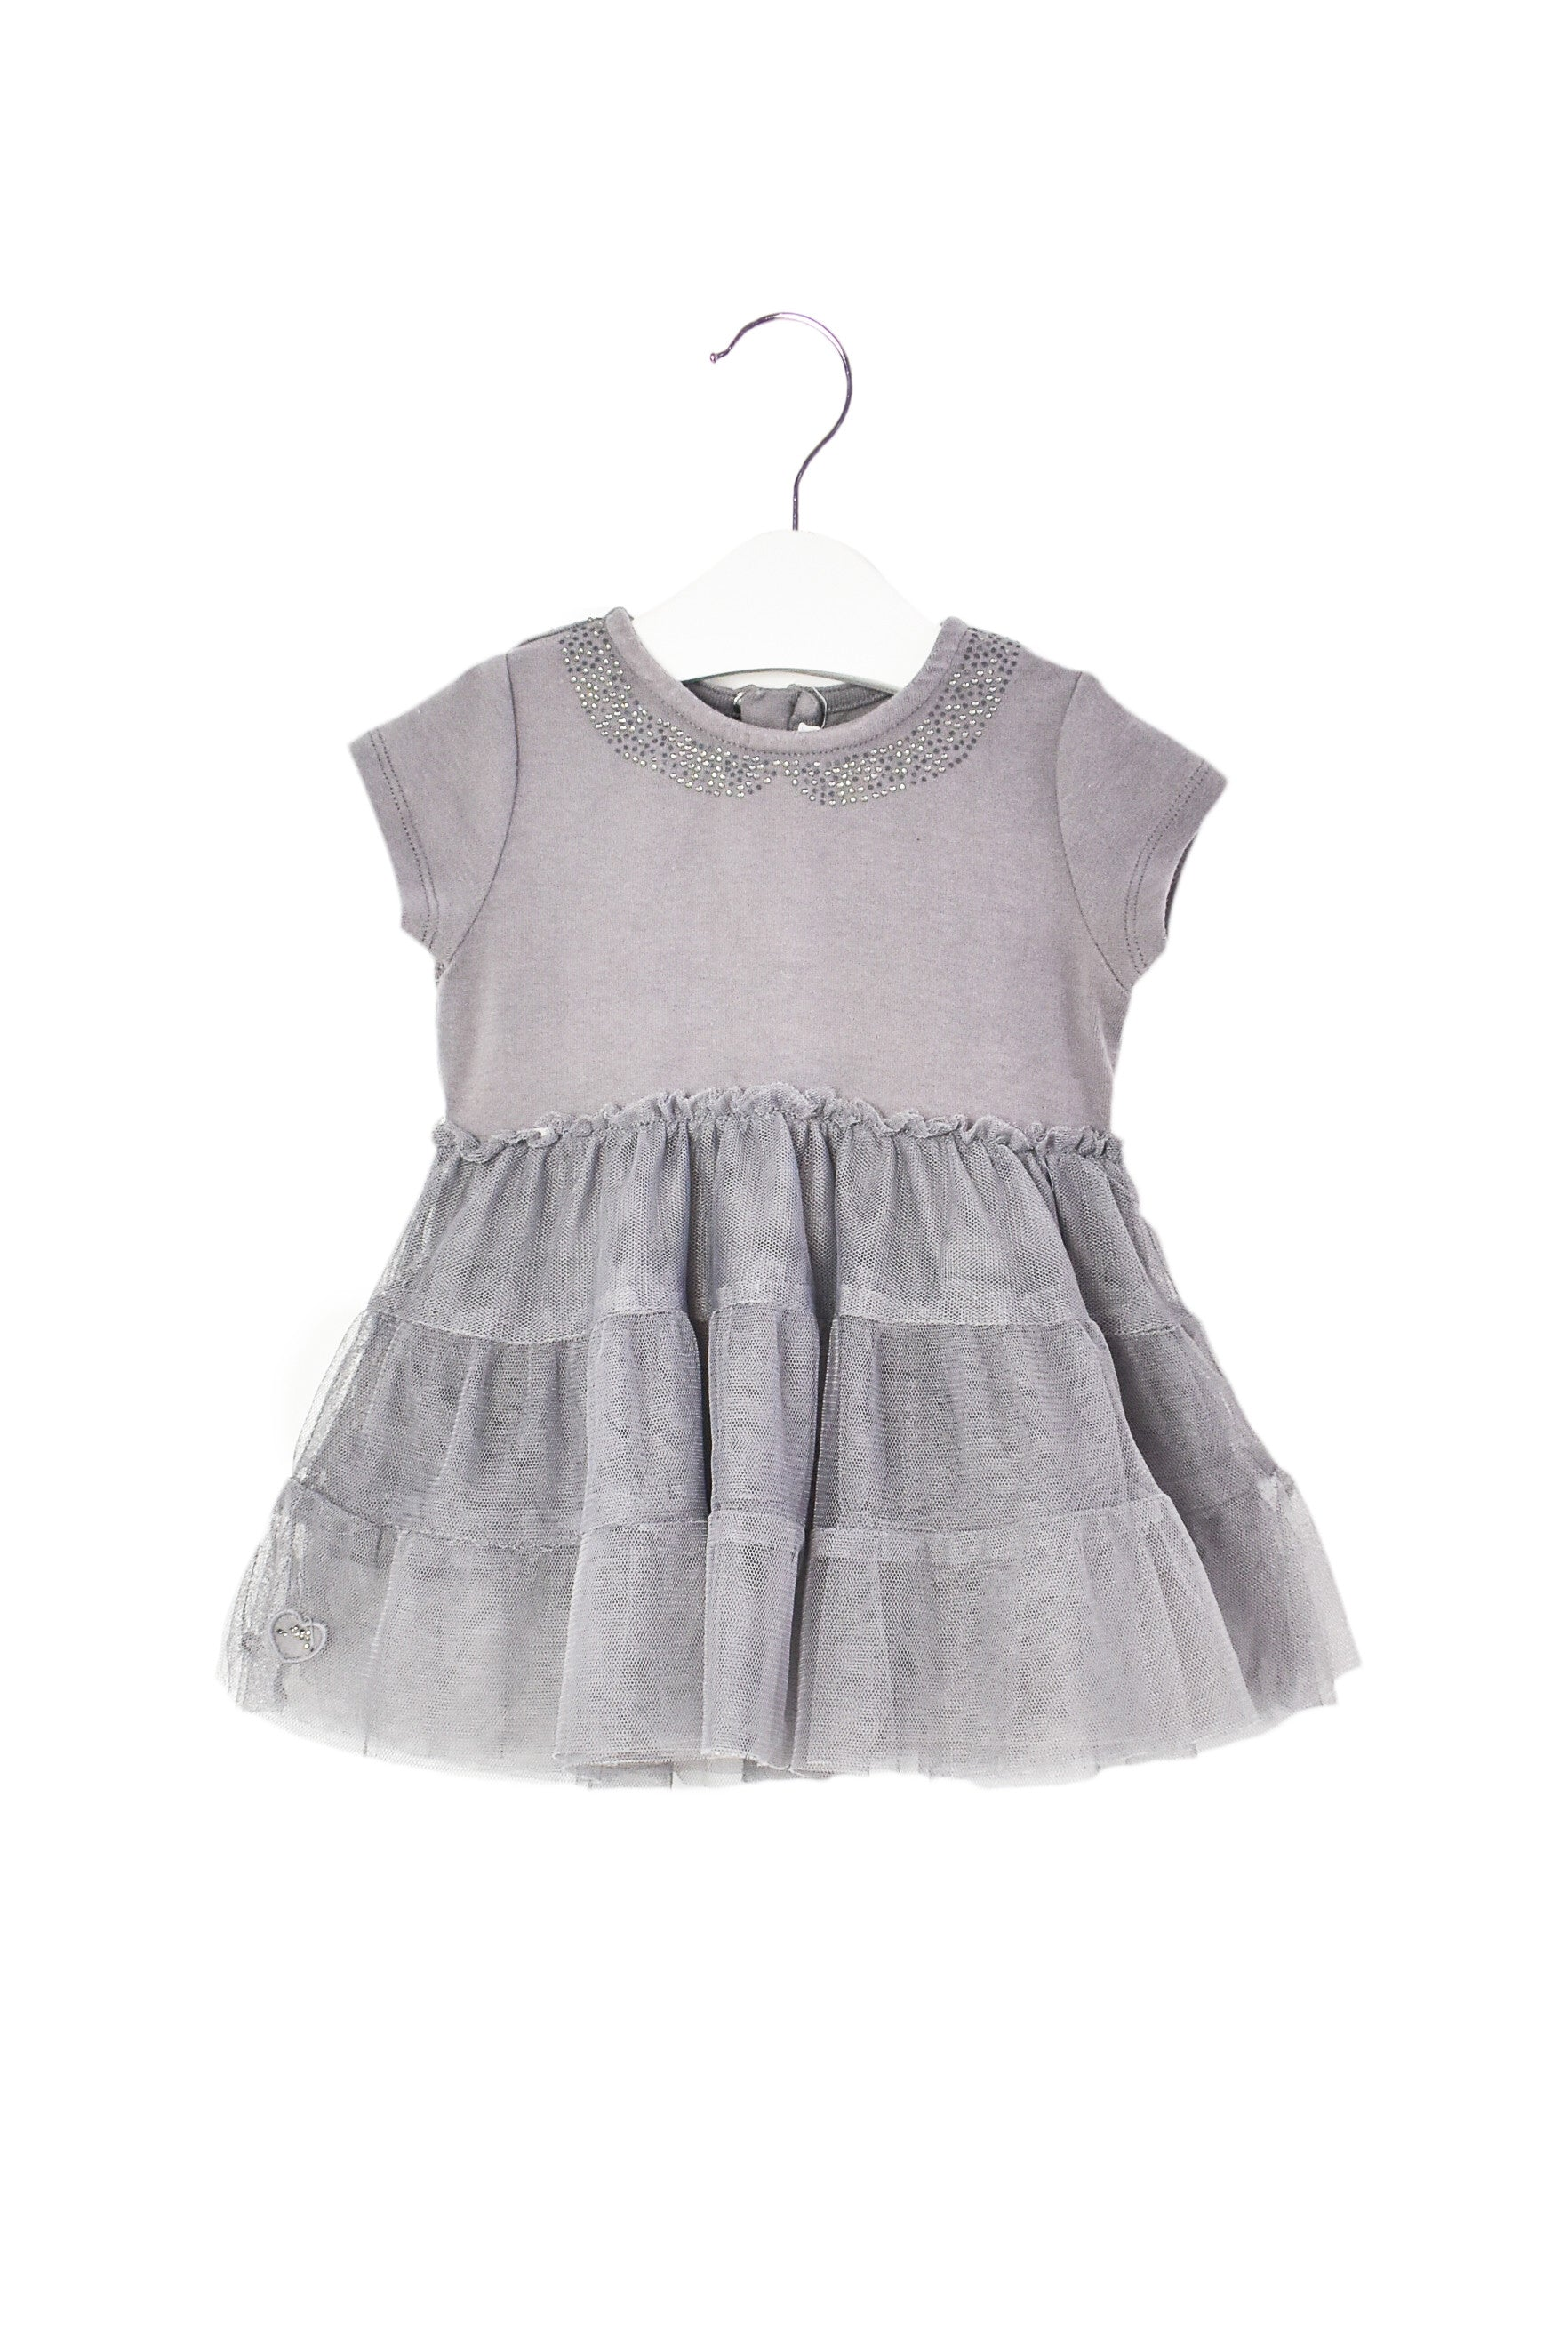 RF10003705 Chateau de Sable Baby~Dress 6M at Retykle